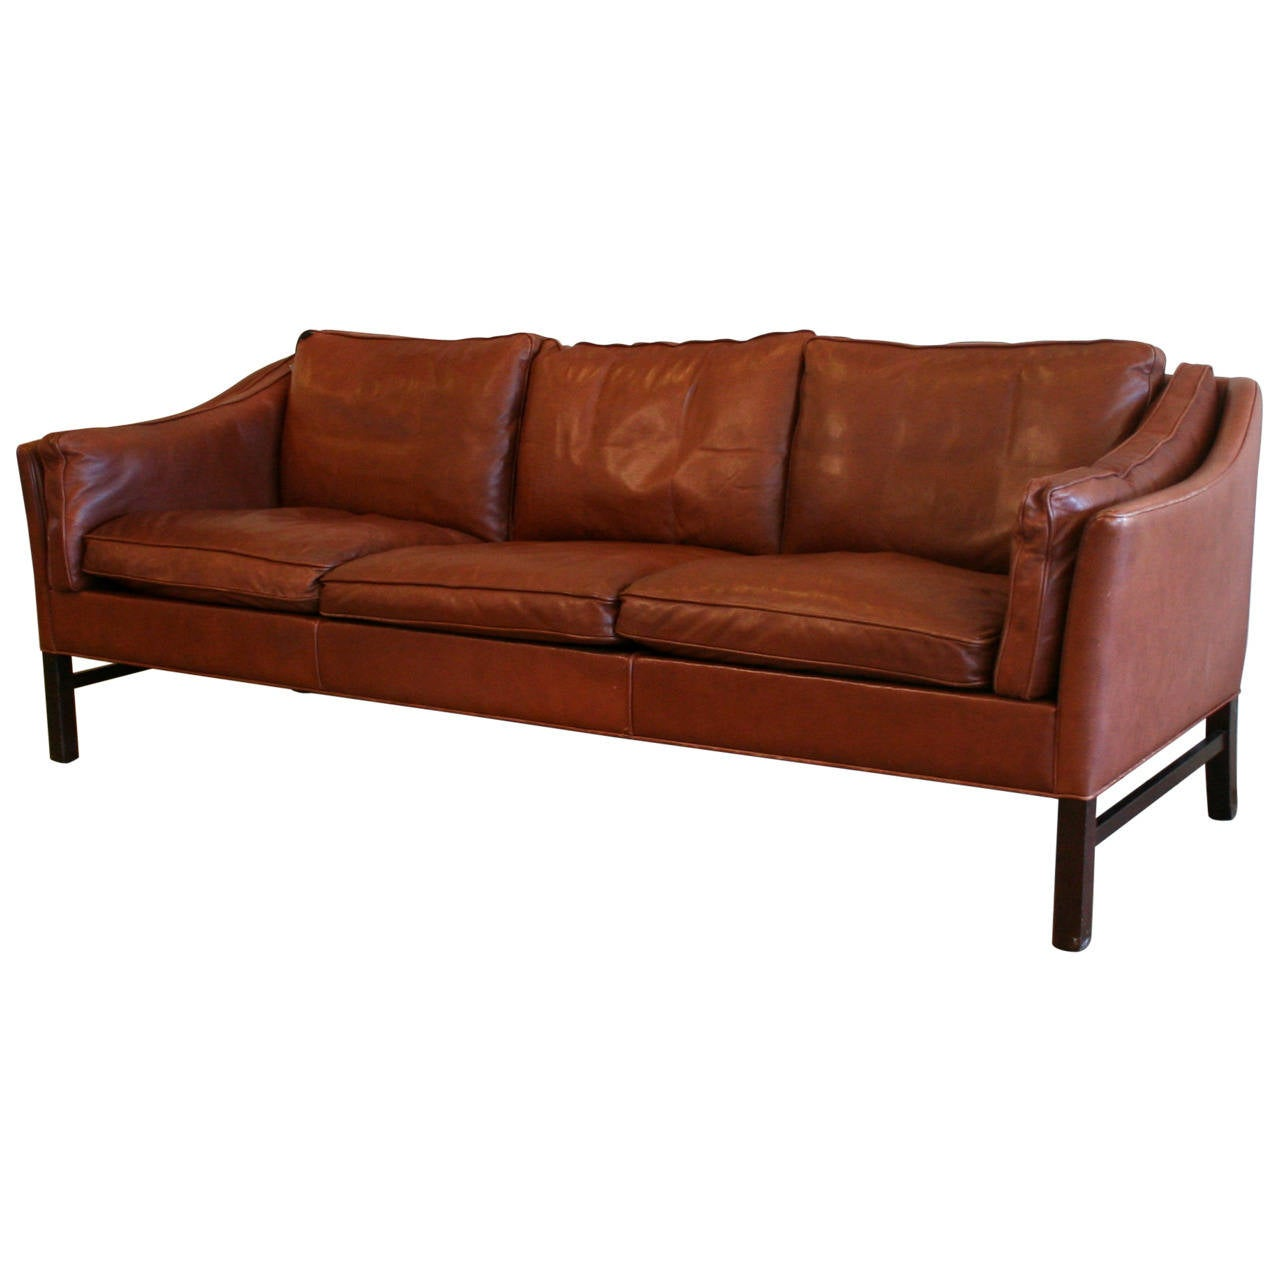 Vintage danish red brown leather sofa at 1stdibs for Red and brown sectional sofa